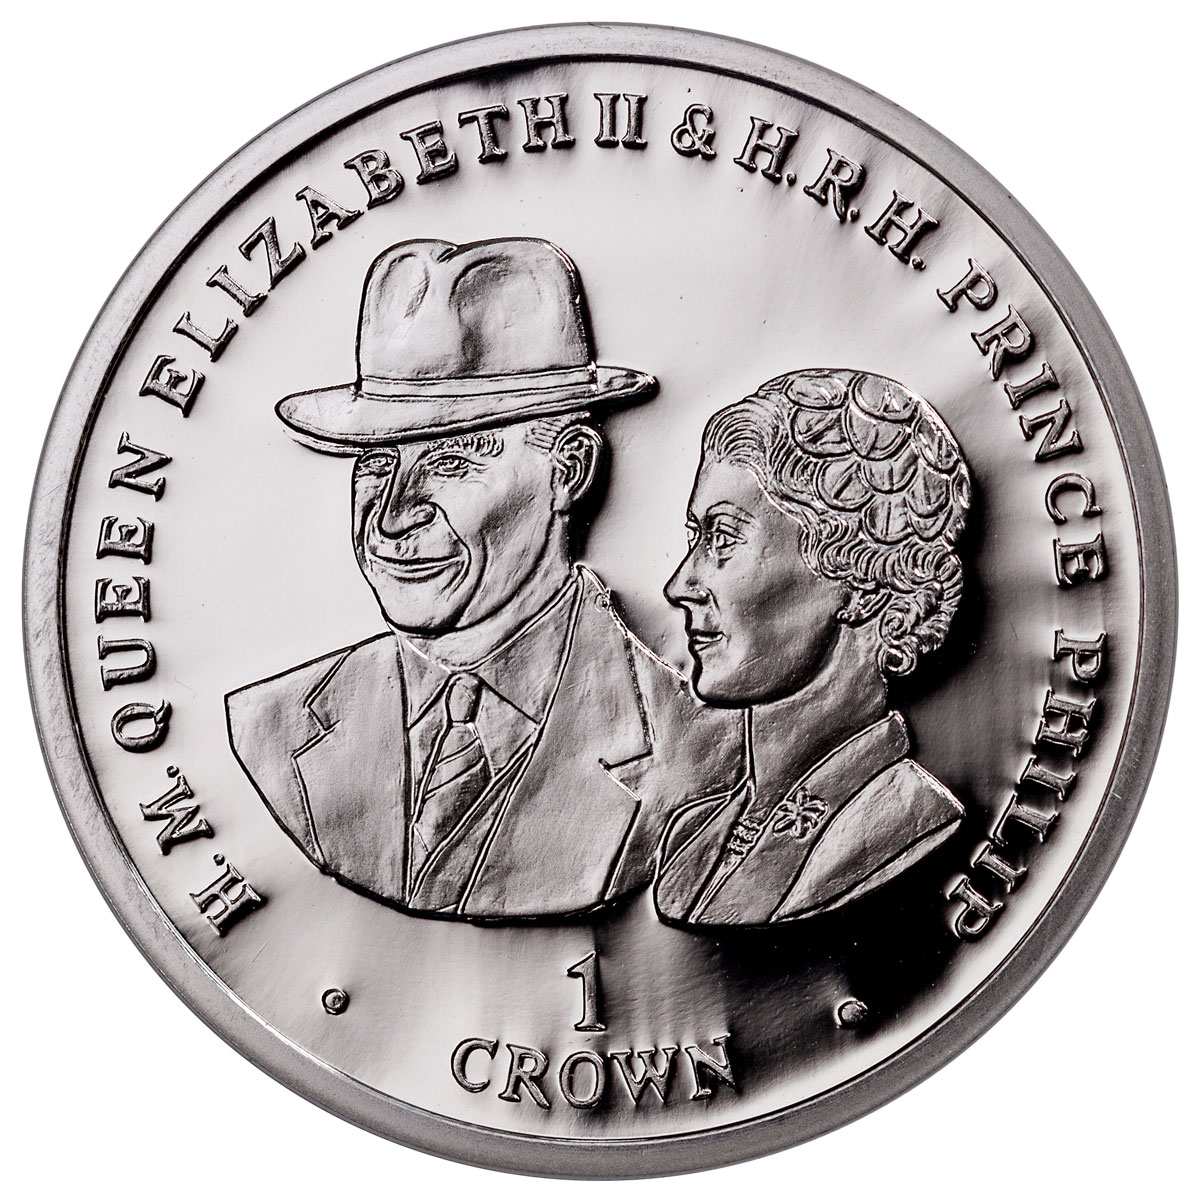 2017 Falkland Islands 70 Years of Queen Elizabeth II & Prince Phillip - The Goodwood Race 1 oz Silver £2 Coin GEM BU